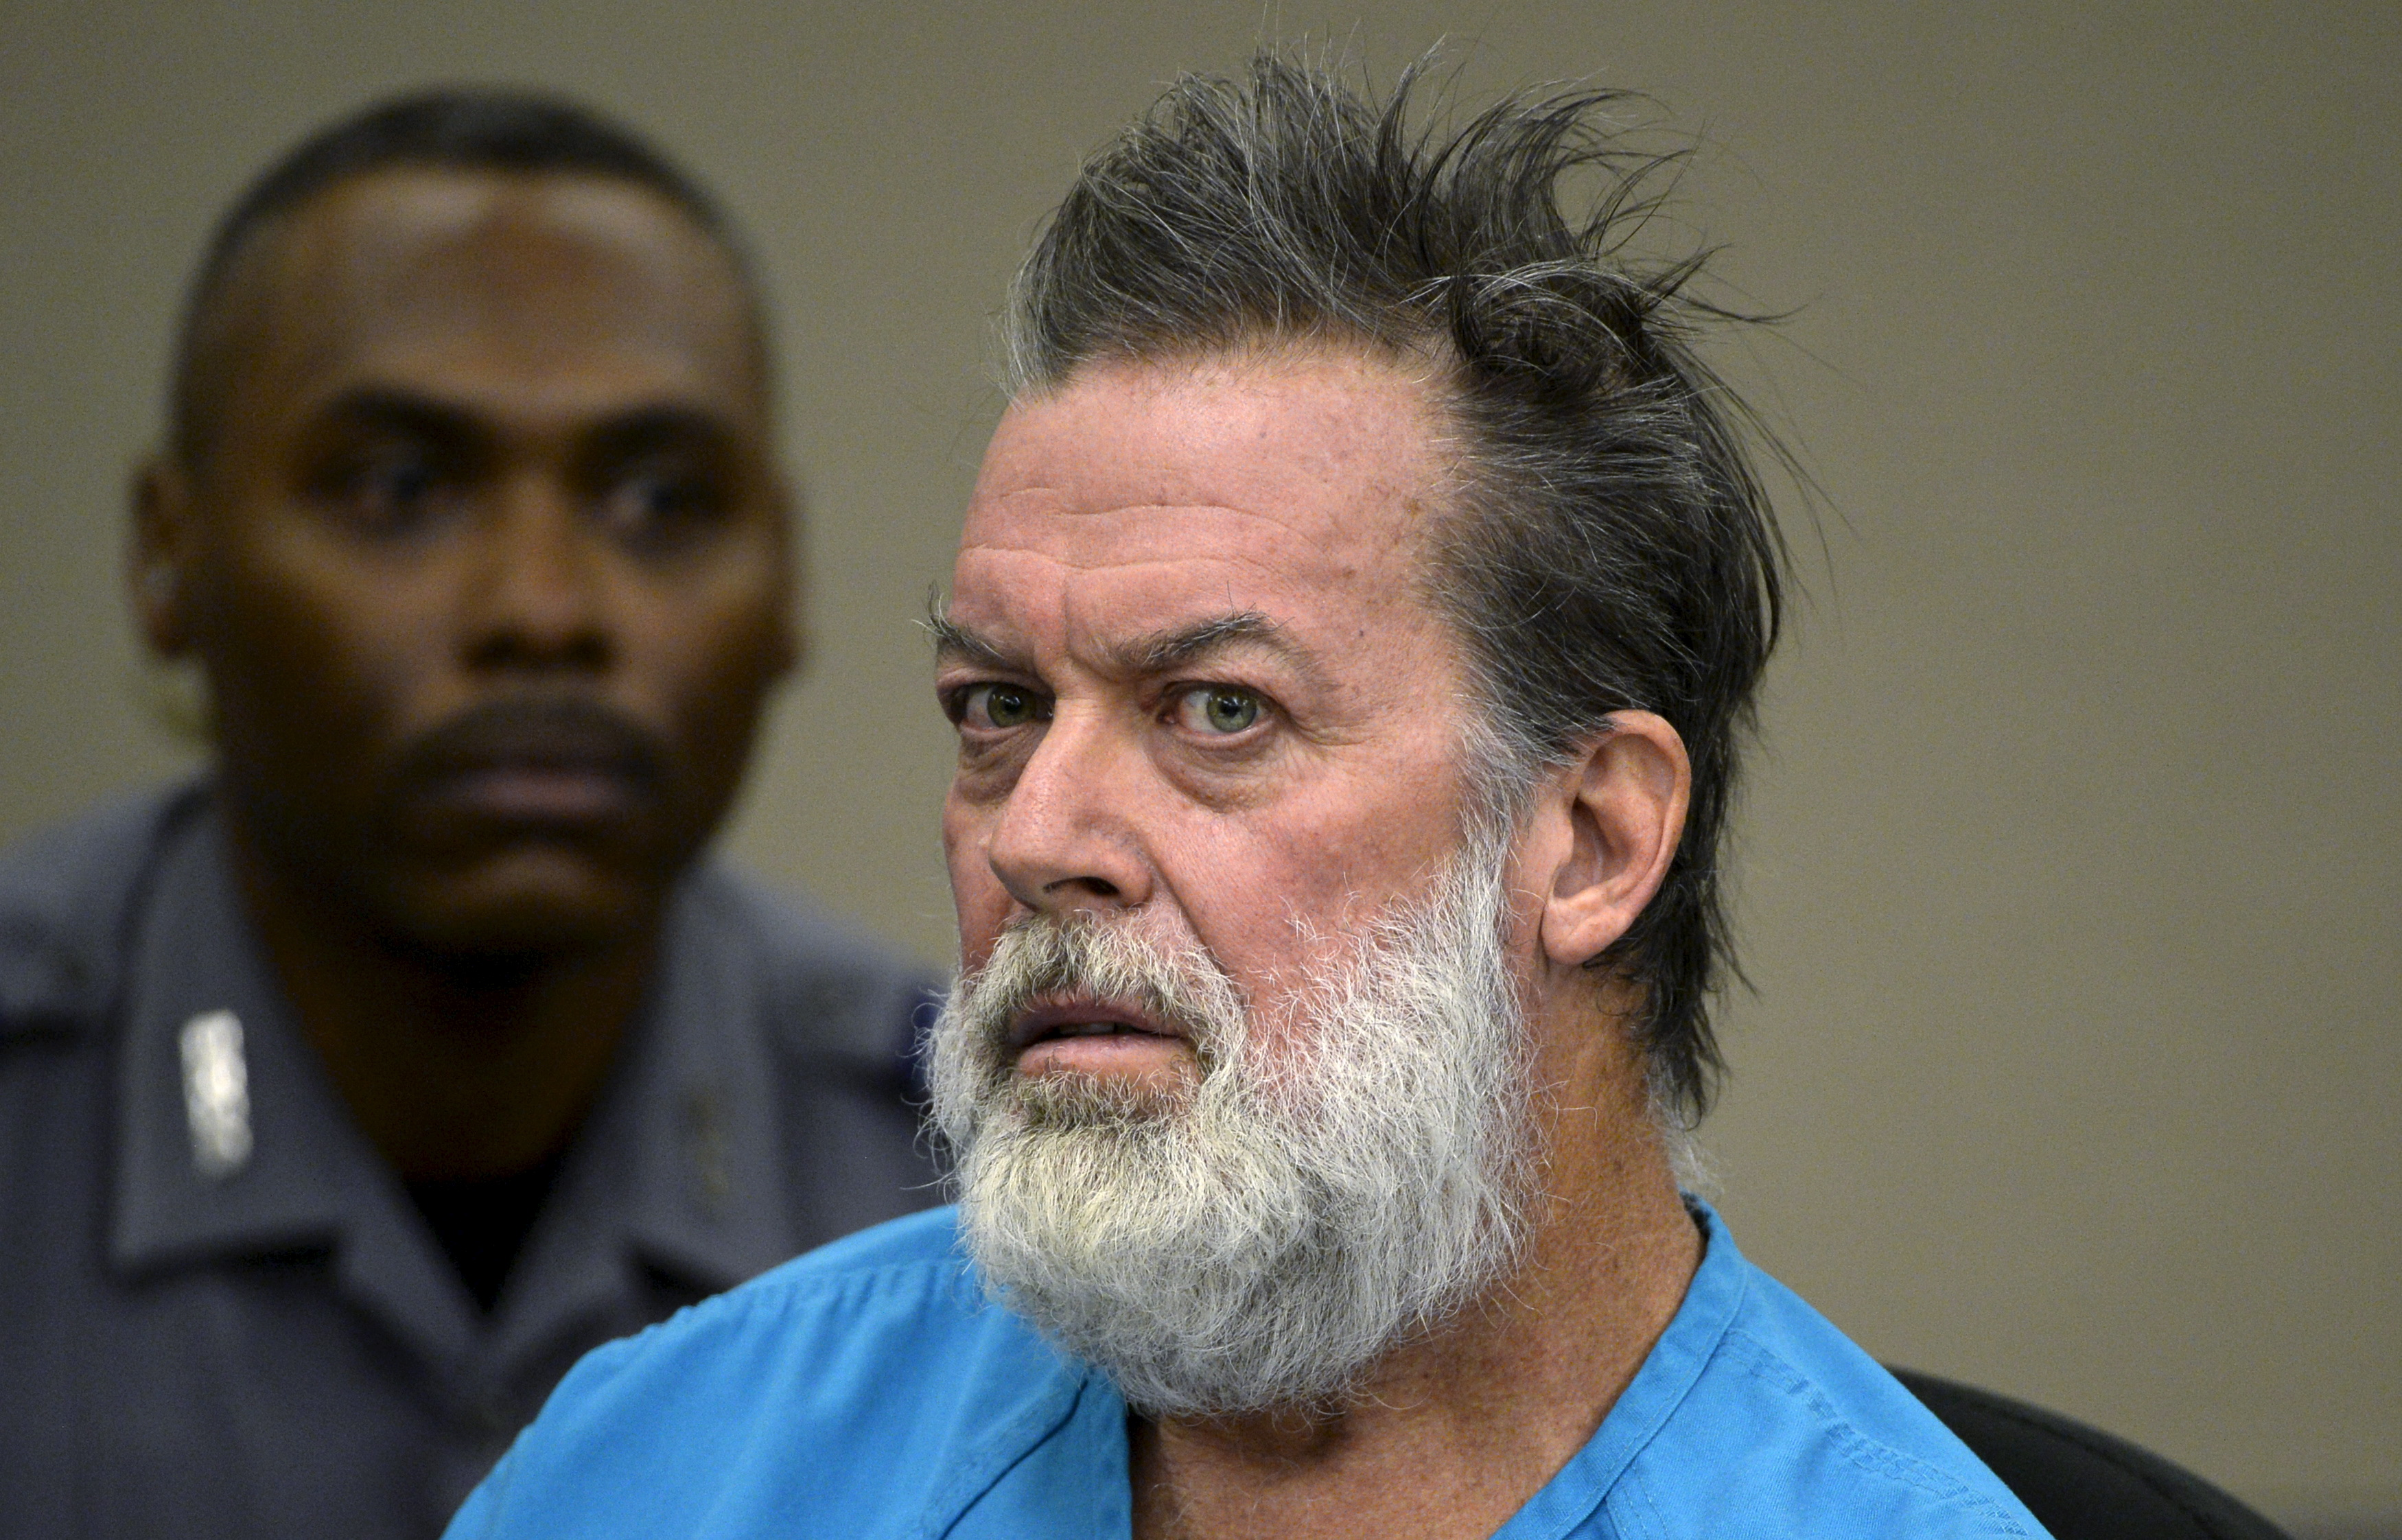 Robert Lewis Dear, accused of shooting three people to death and wounding nine others at a Planned Parenthood clinic in Colorado, attends a hearing in Colorado Springs, Colorado, U.S. December 9, 2015.   REUTERS/Andy Cross